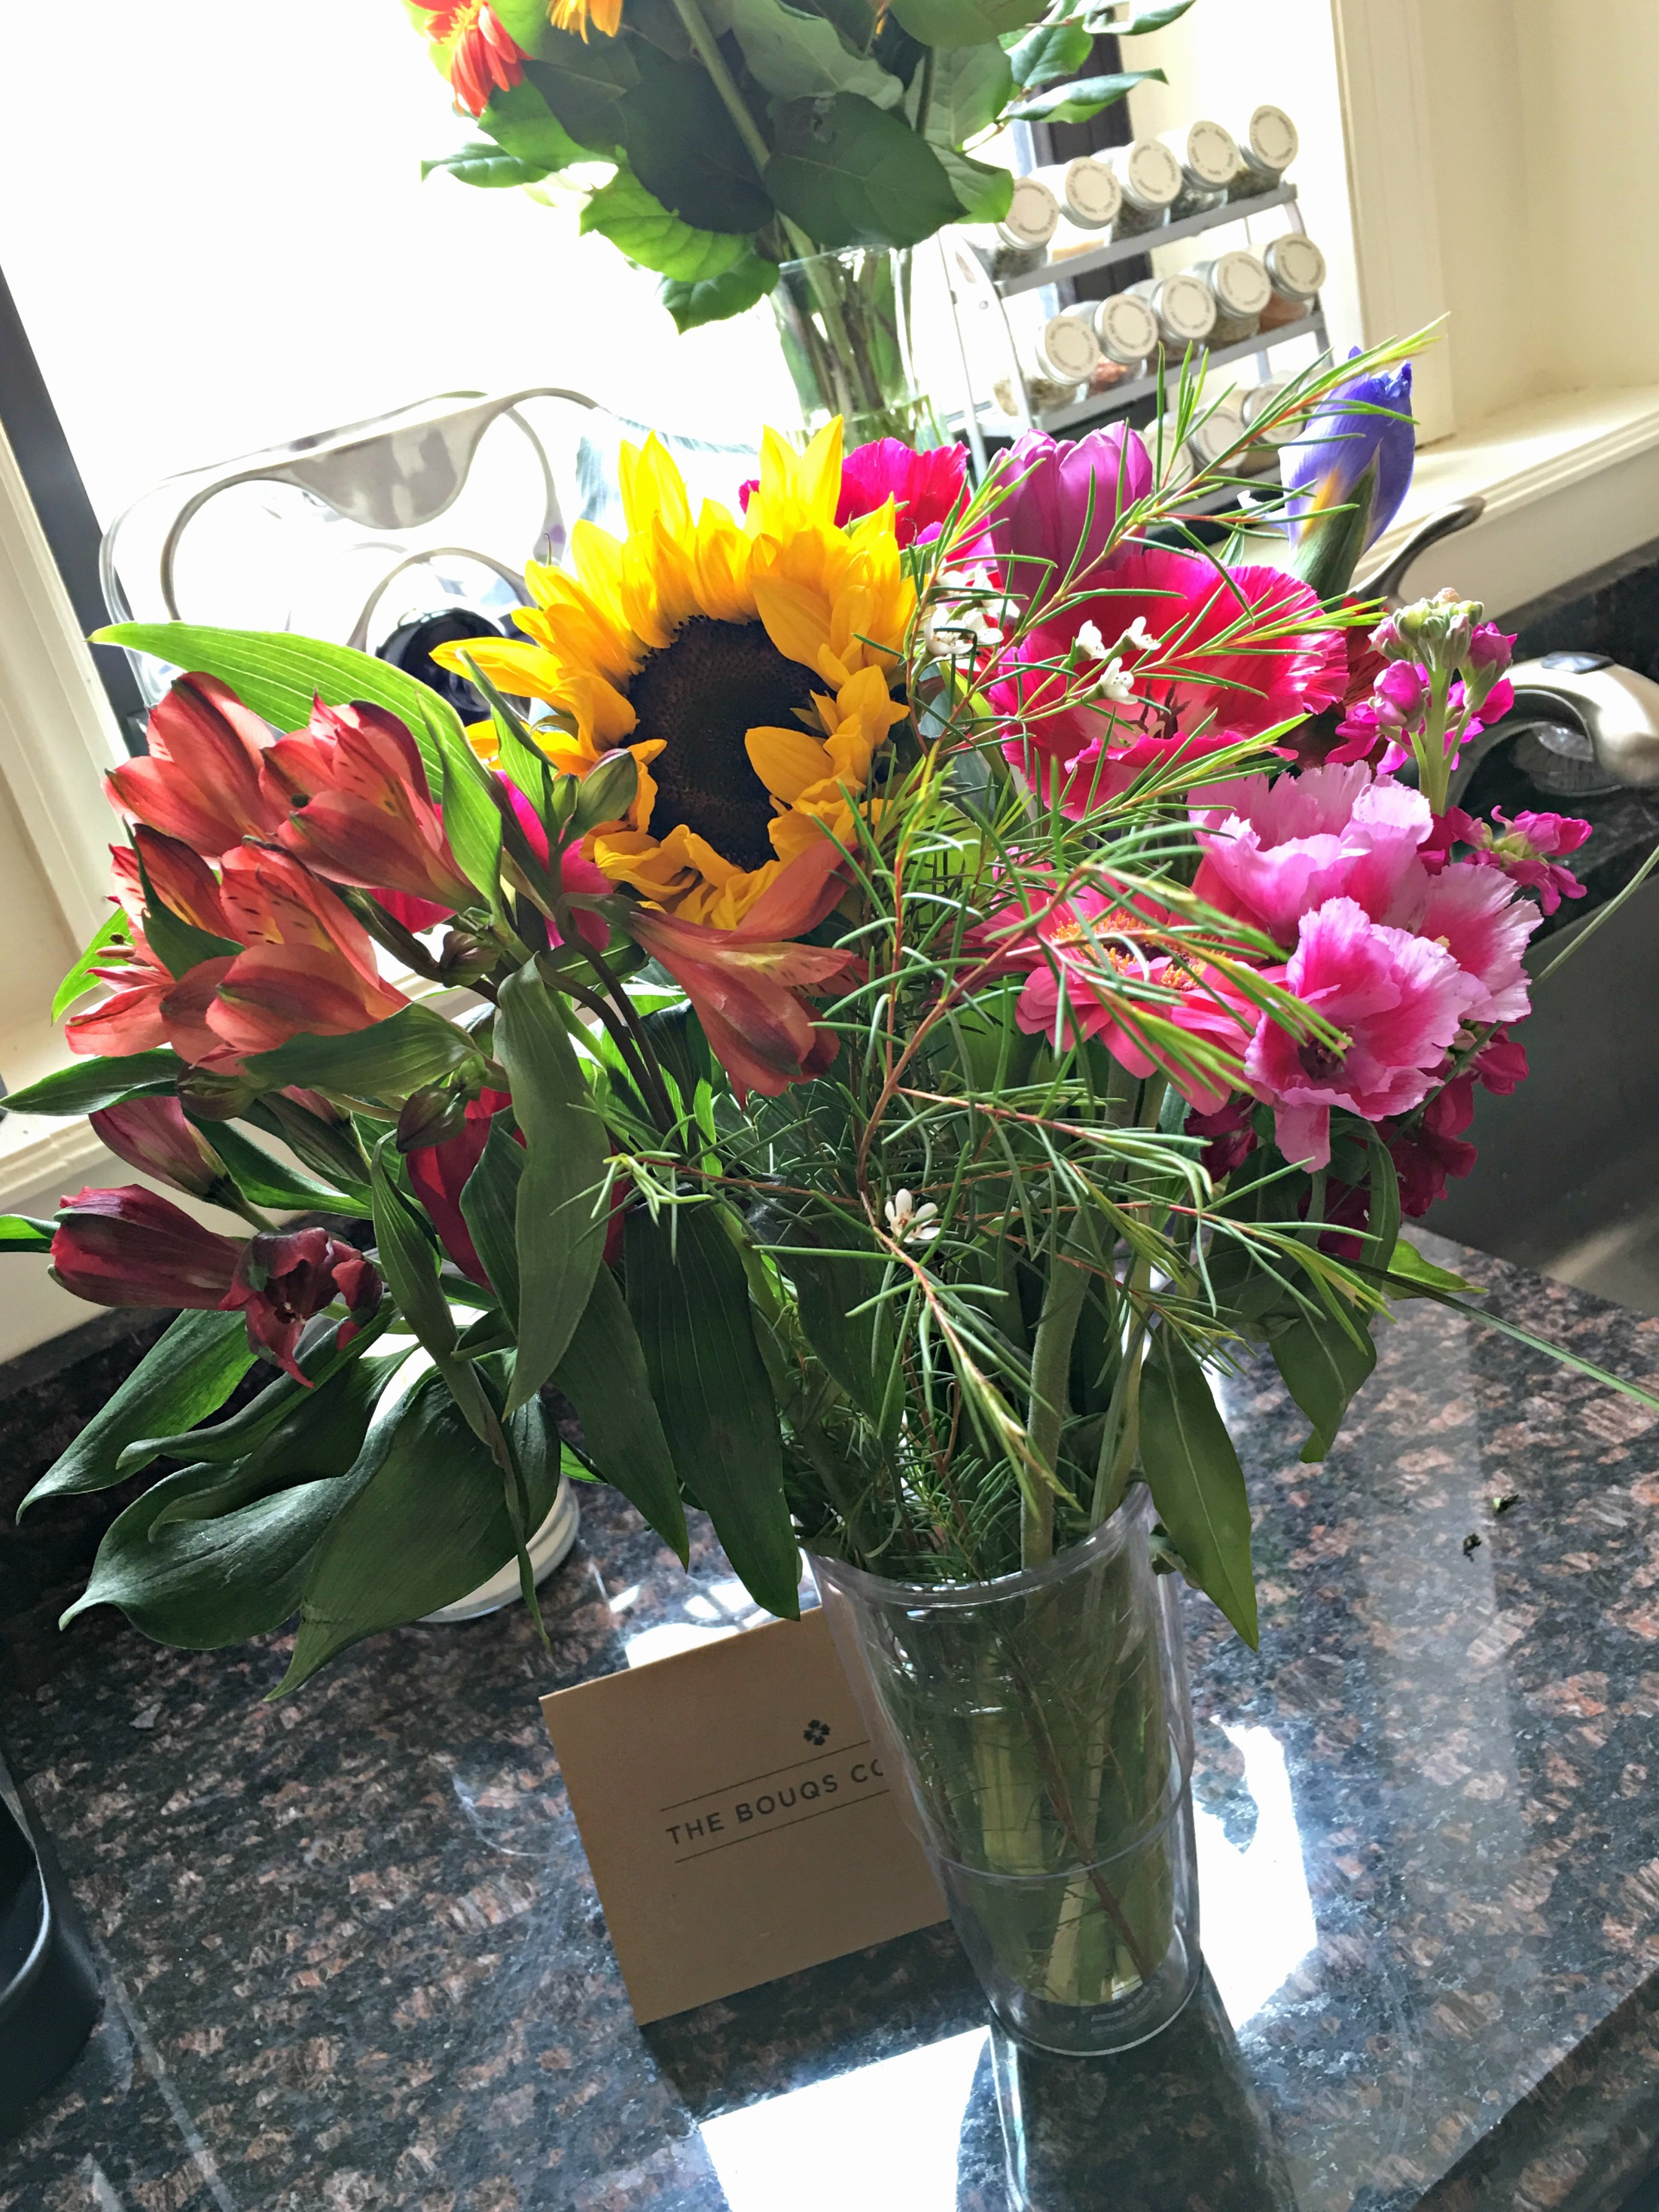 The Bouqs flowers